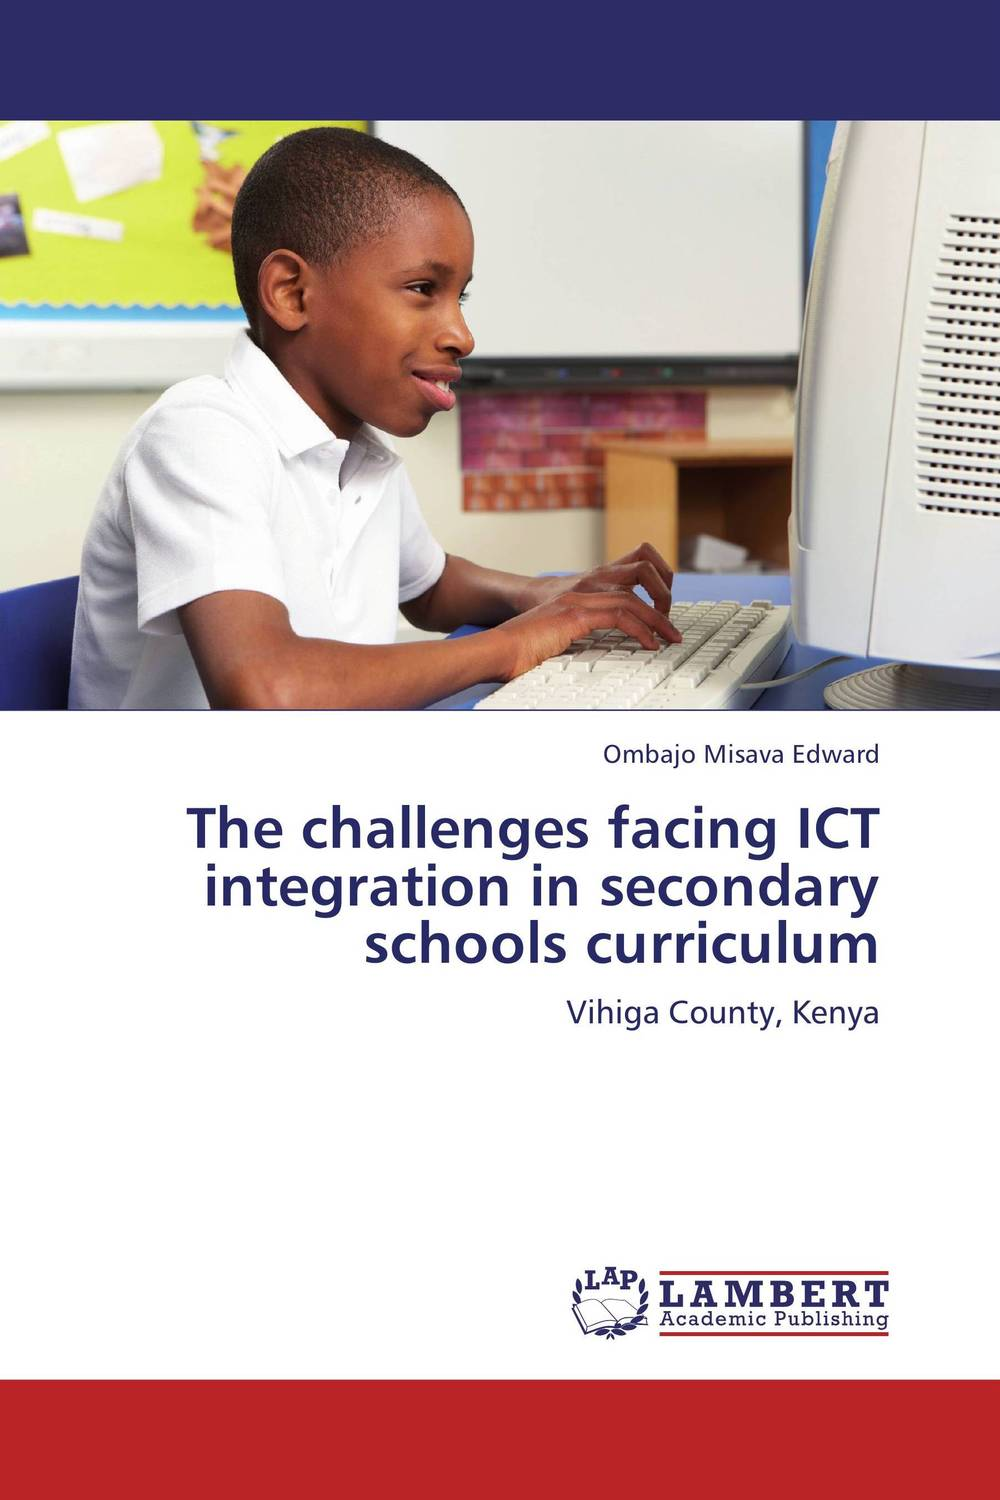 The challenges facing ICT integration in secondary schools curriculum challenges facing teen mothers in secondary schools in kenya